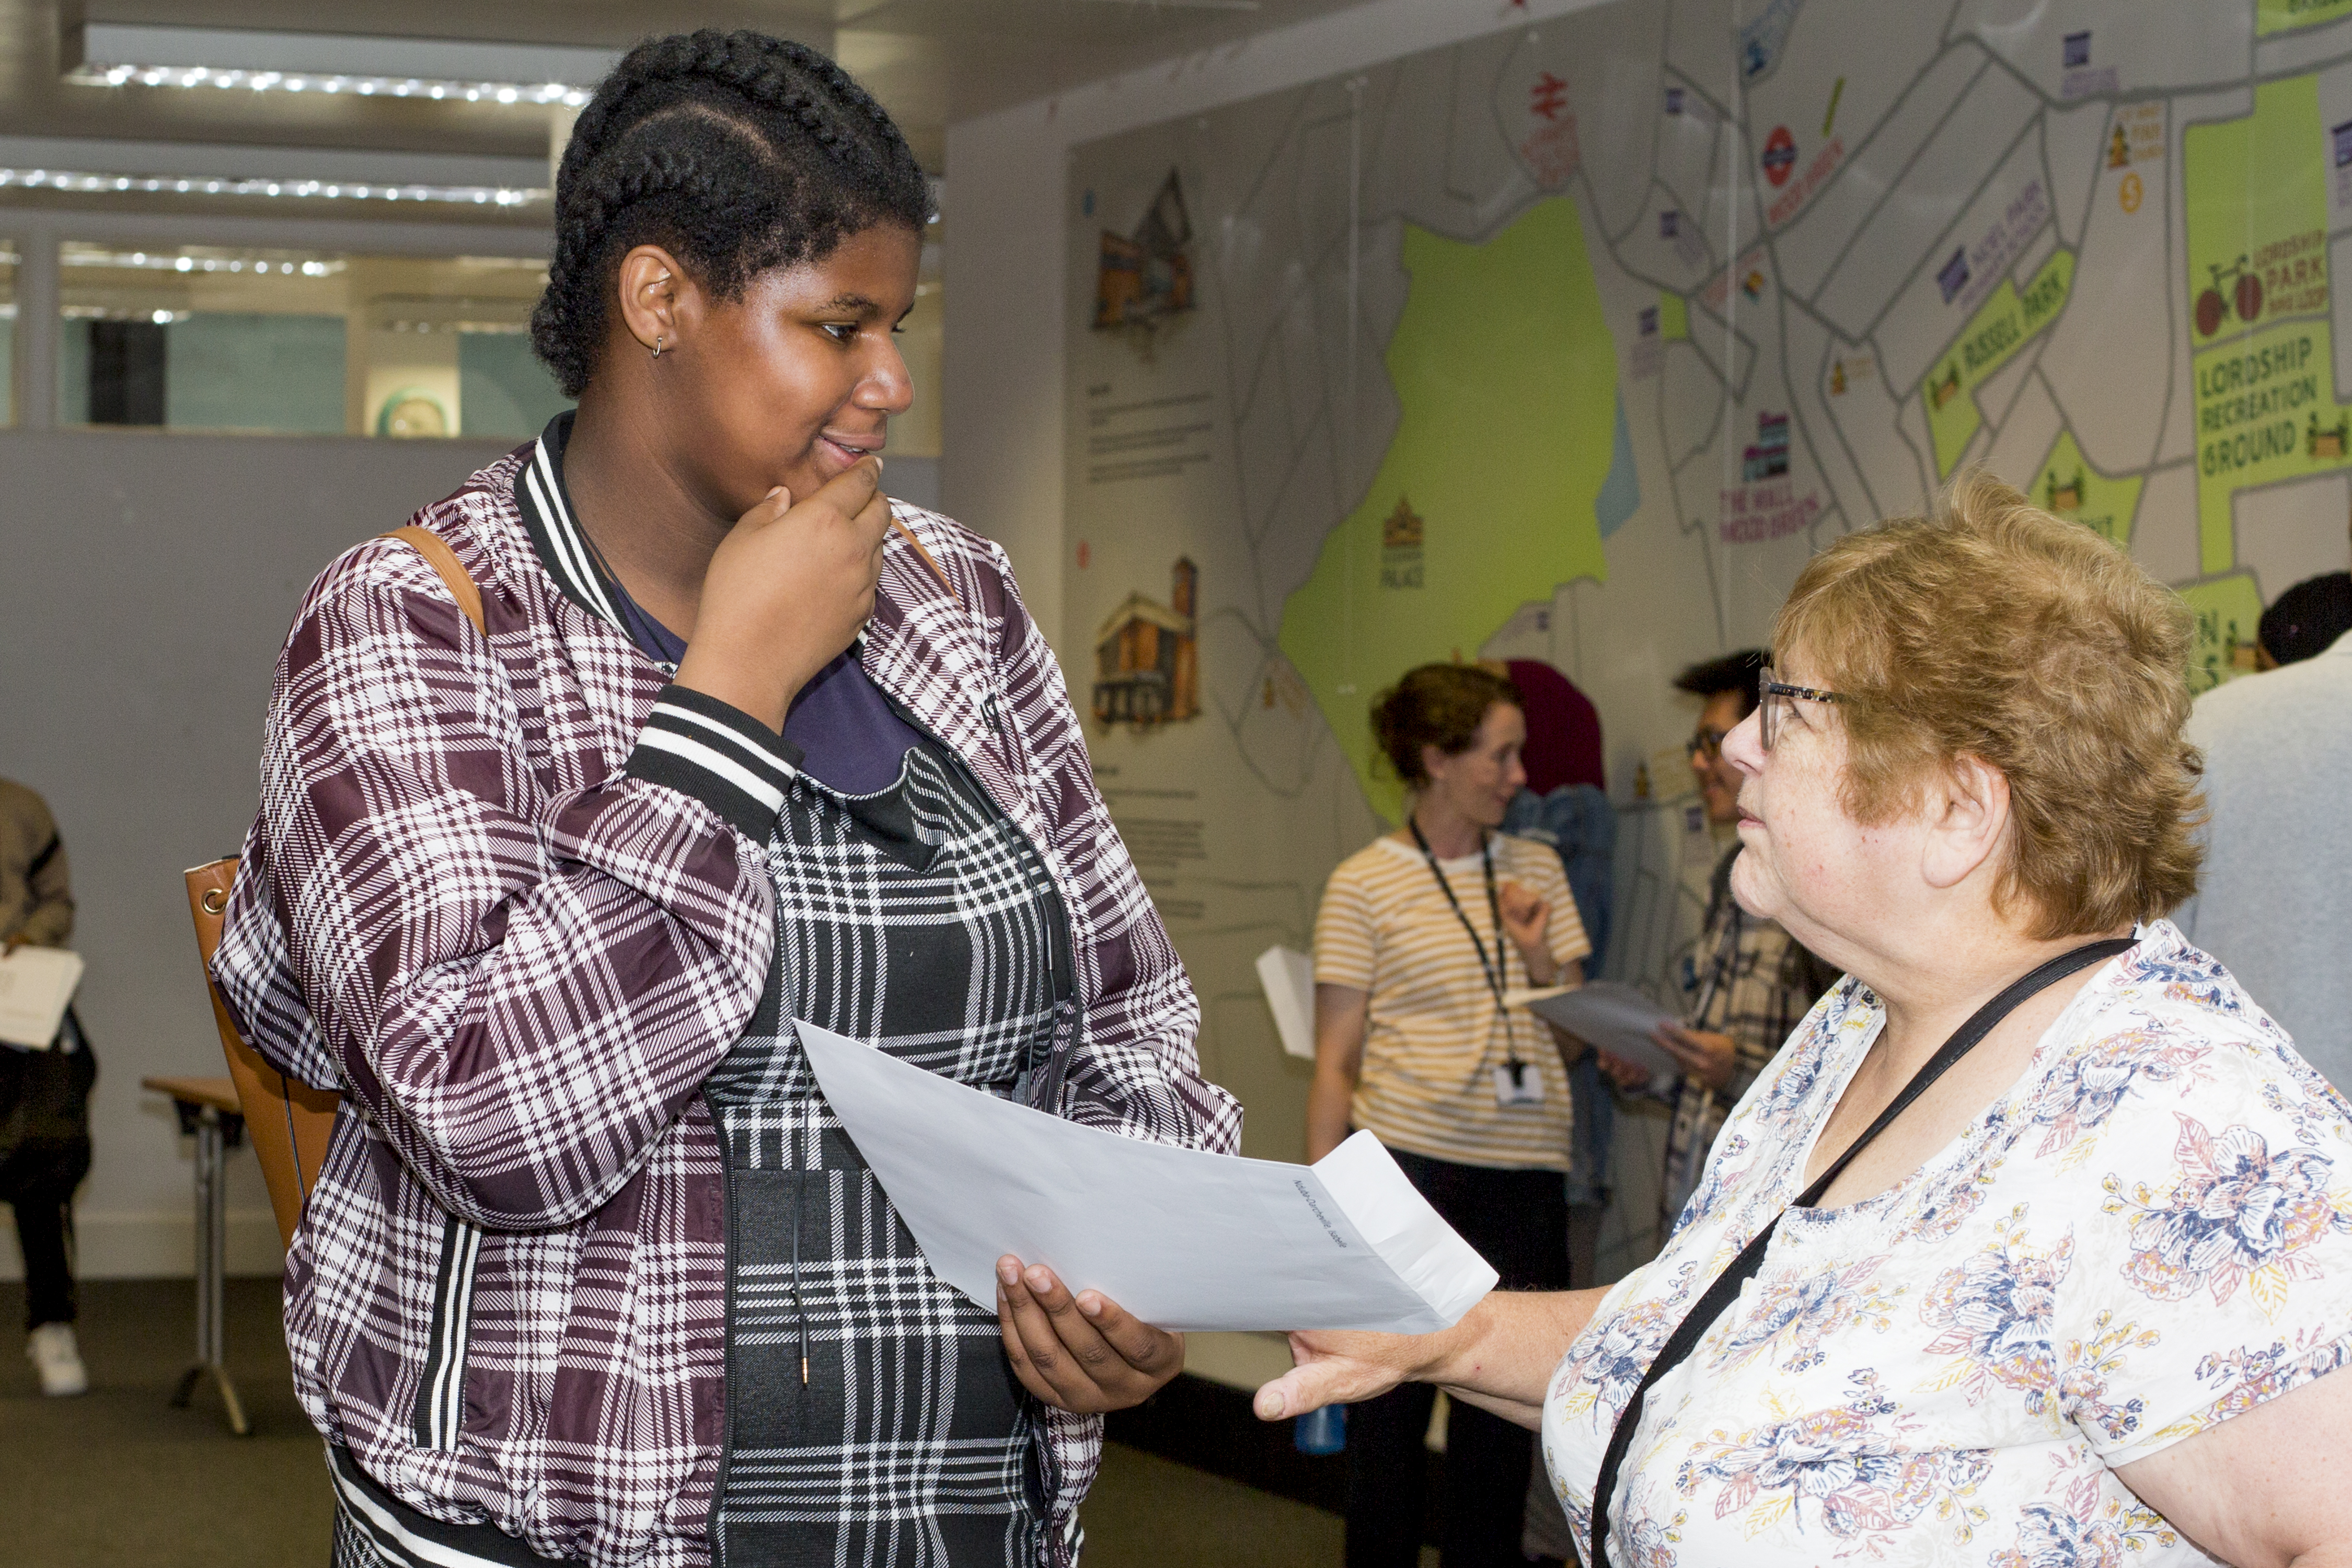 Cllr Zena Brabazon, the Deputy Leader of Haringey Council & Cabinet Member for Children & Families, chats to a Park View pupil